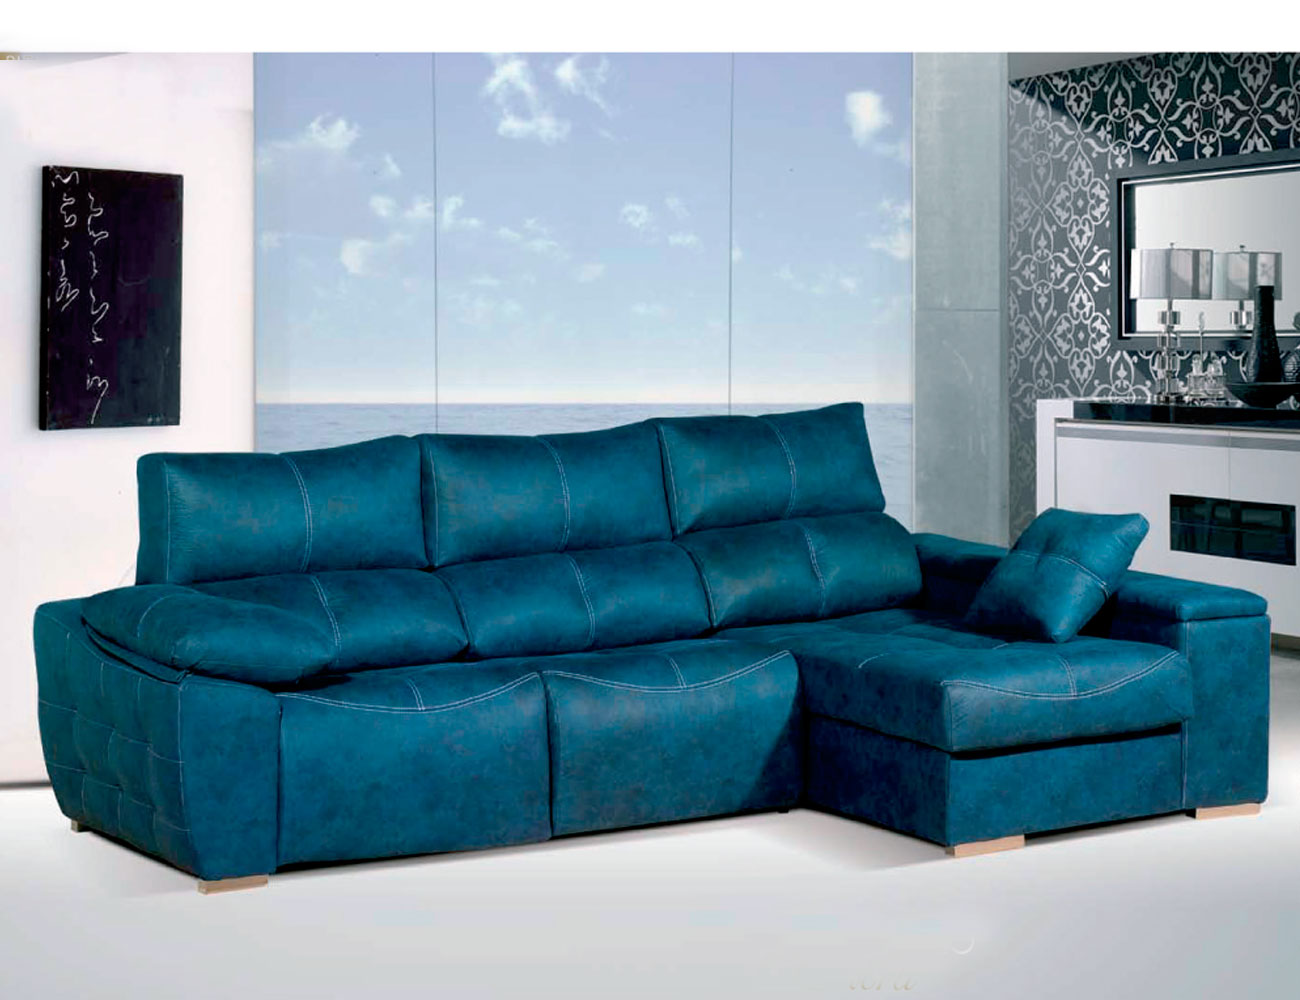 Sofa chaiselongue relax 2 motores anti manchas turquesa32